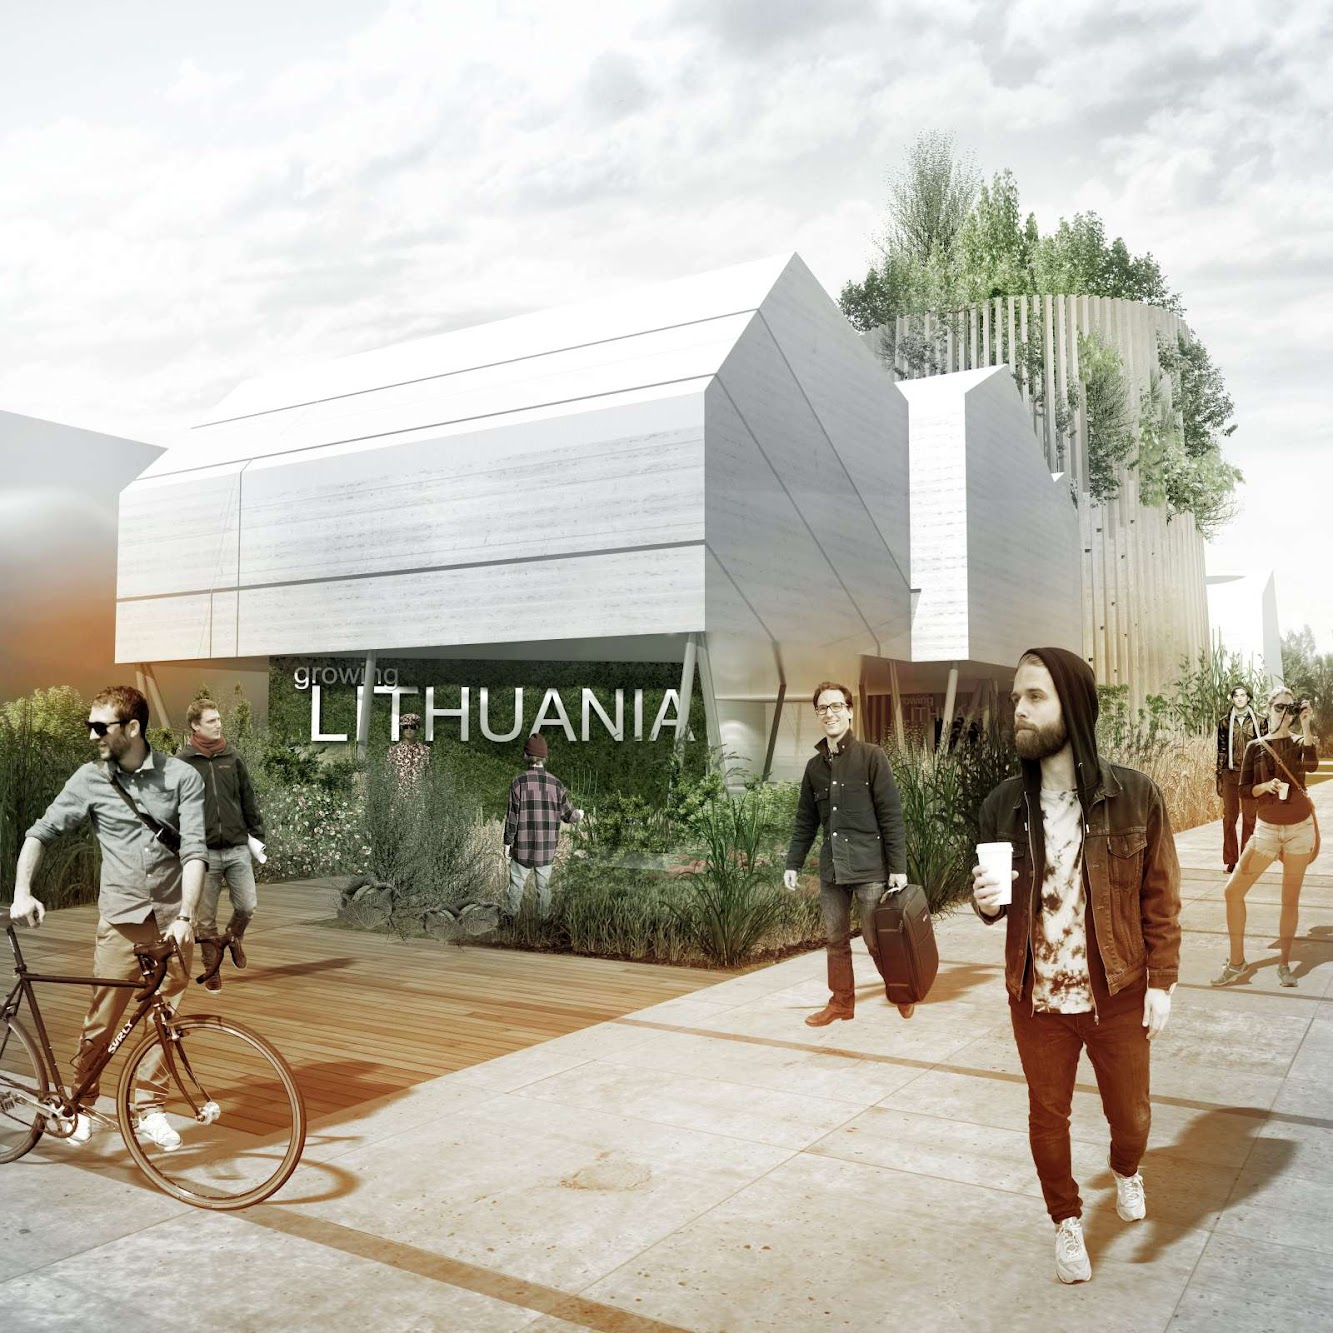 Pavilion: LITHUANIAN PAVILION EXPO 2015 by VILNIUS ARCHITECTURE STUDIO